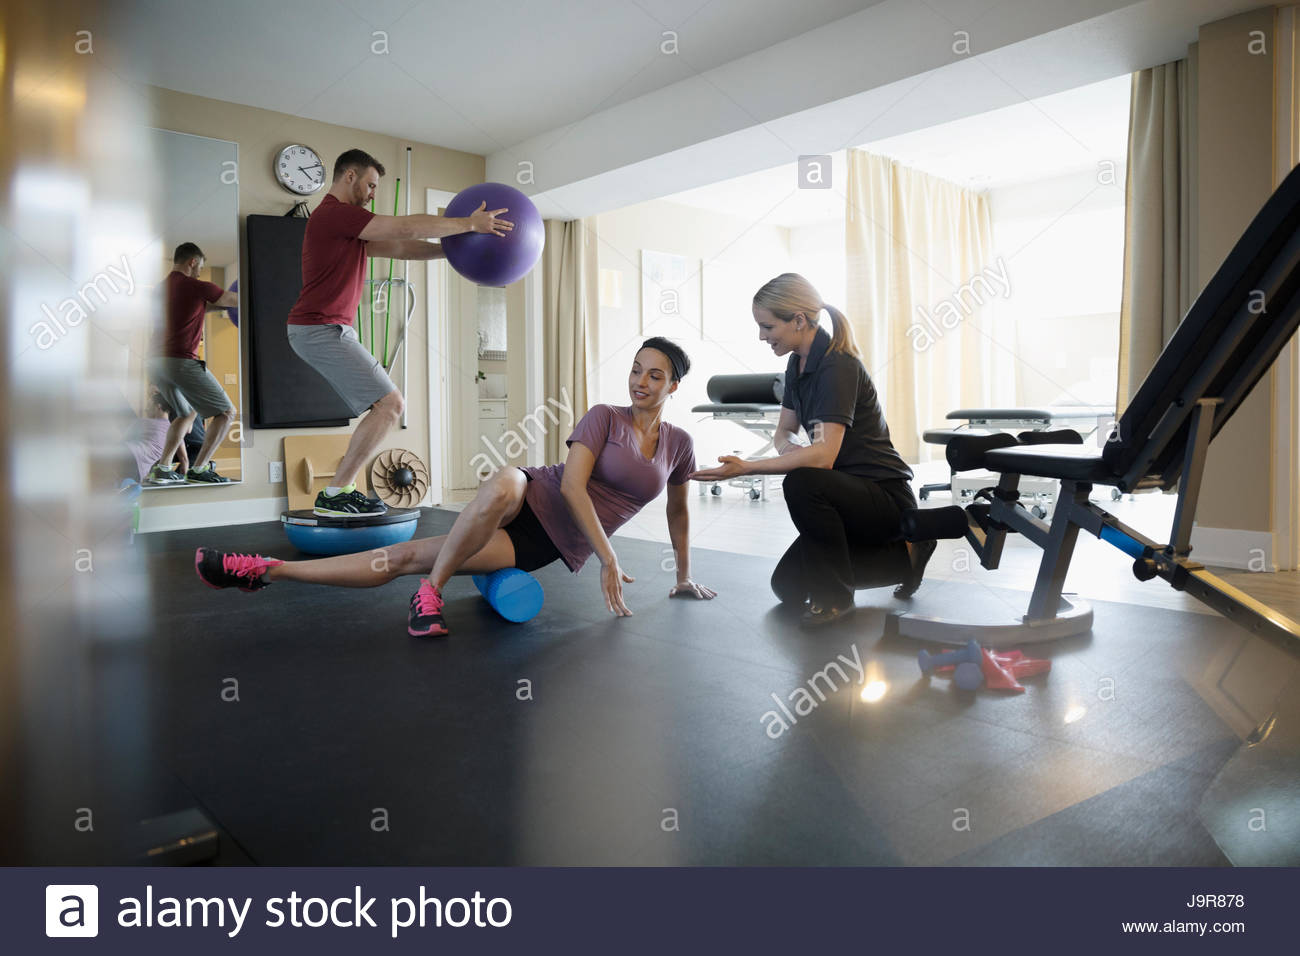 Female physiotherapist working with clients exercising and stretching in clinic gym - Stock Image